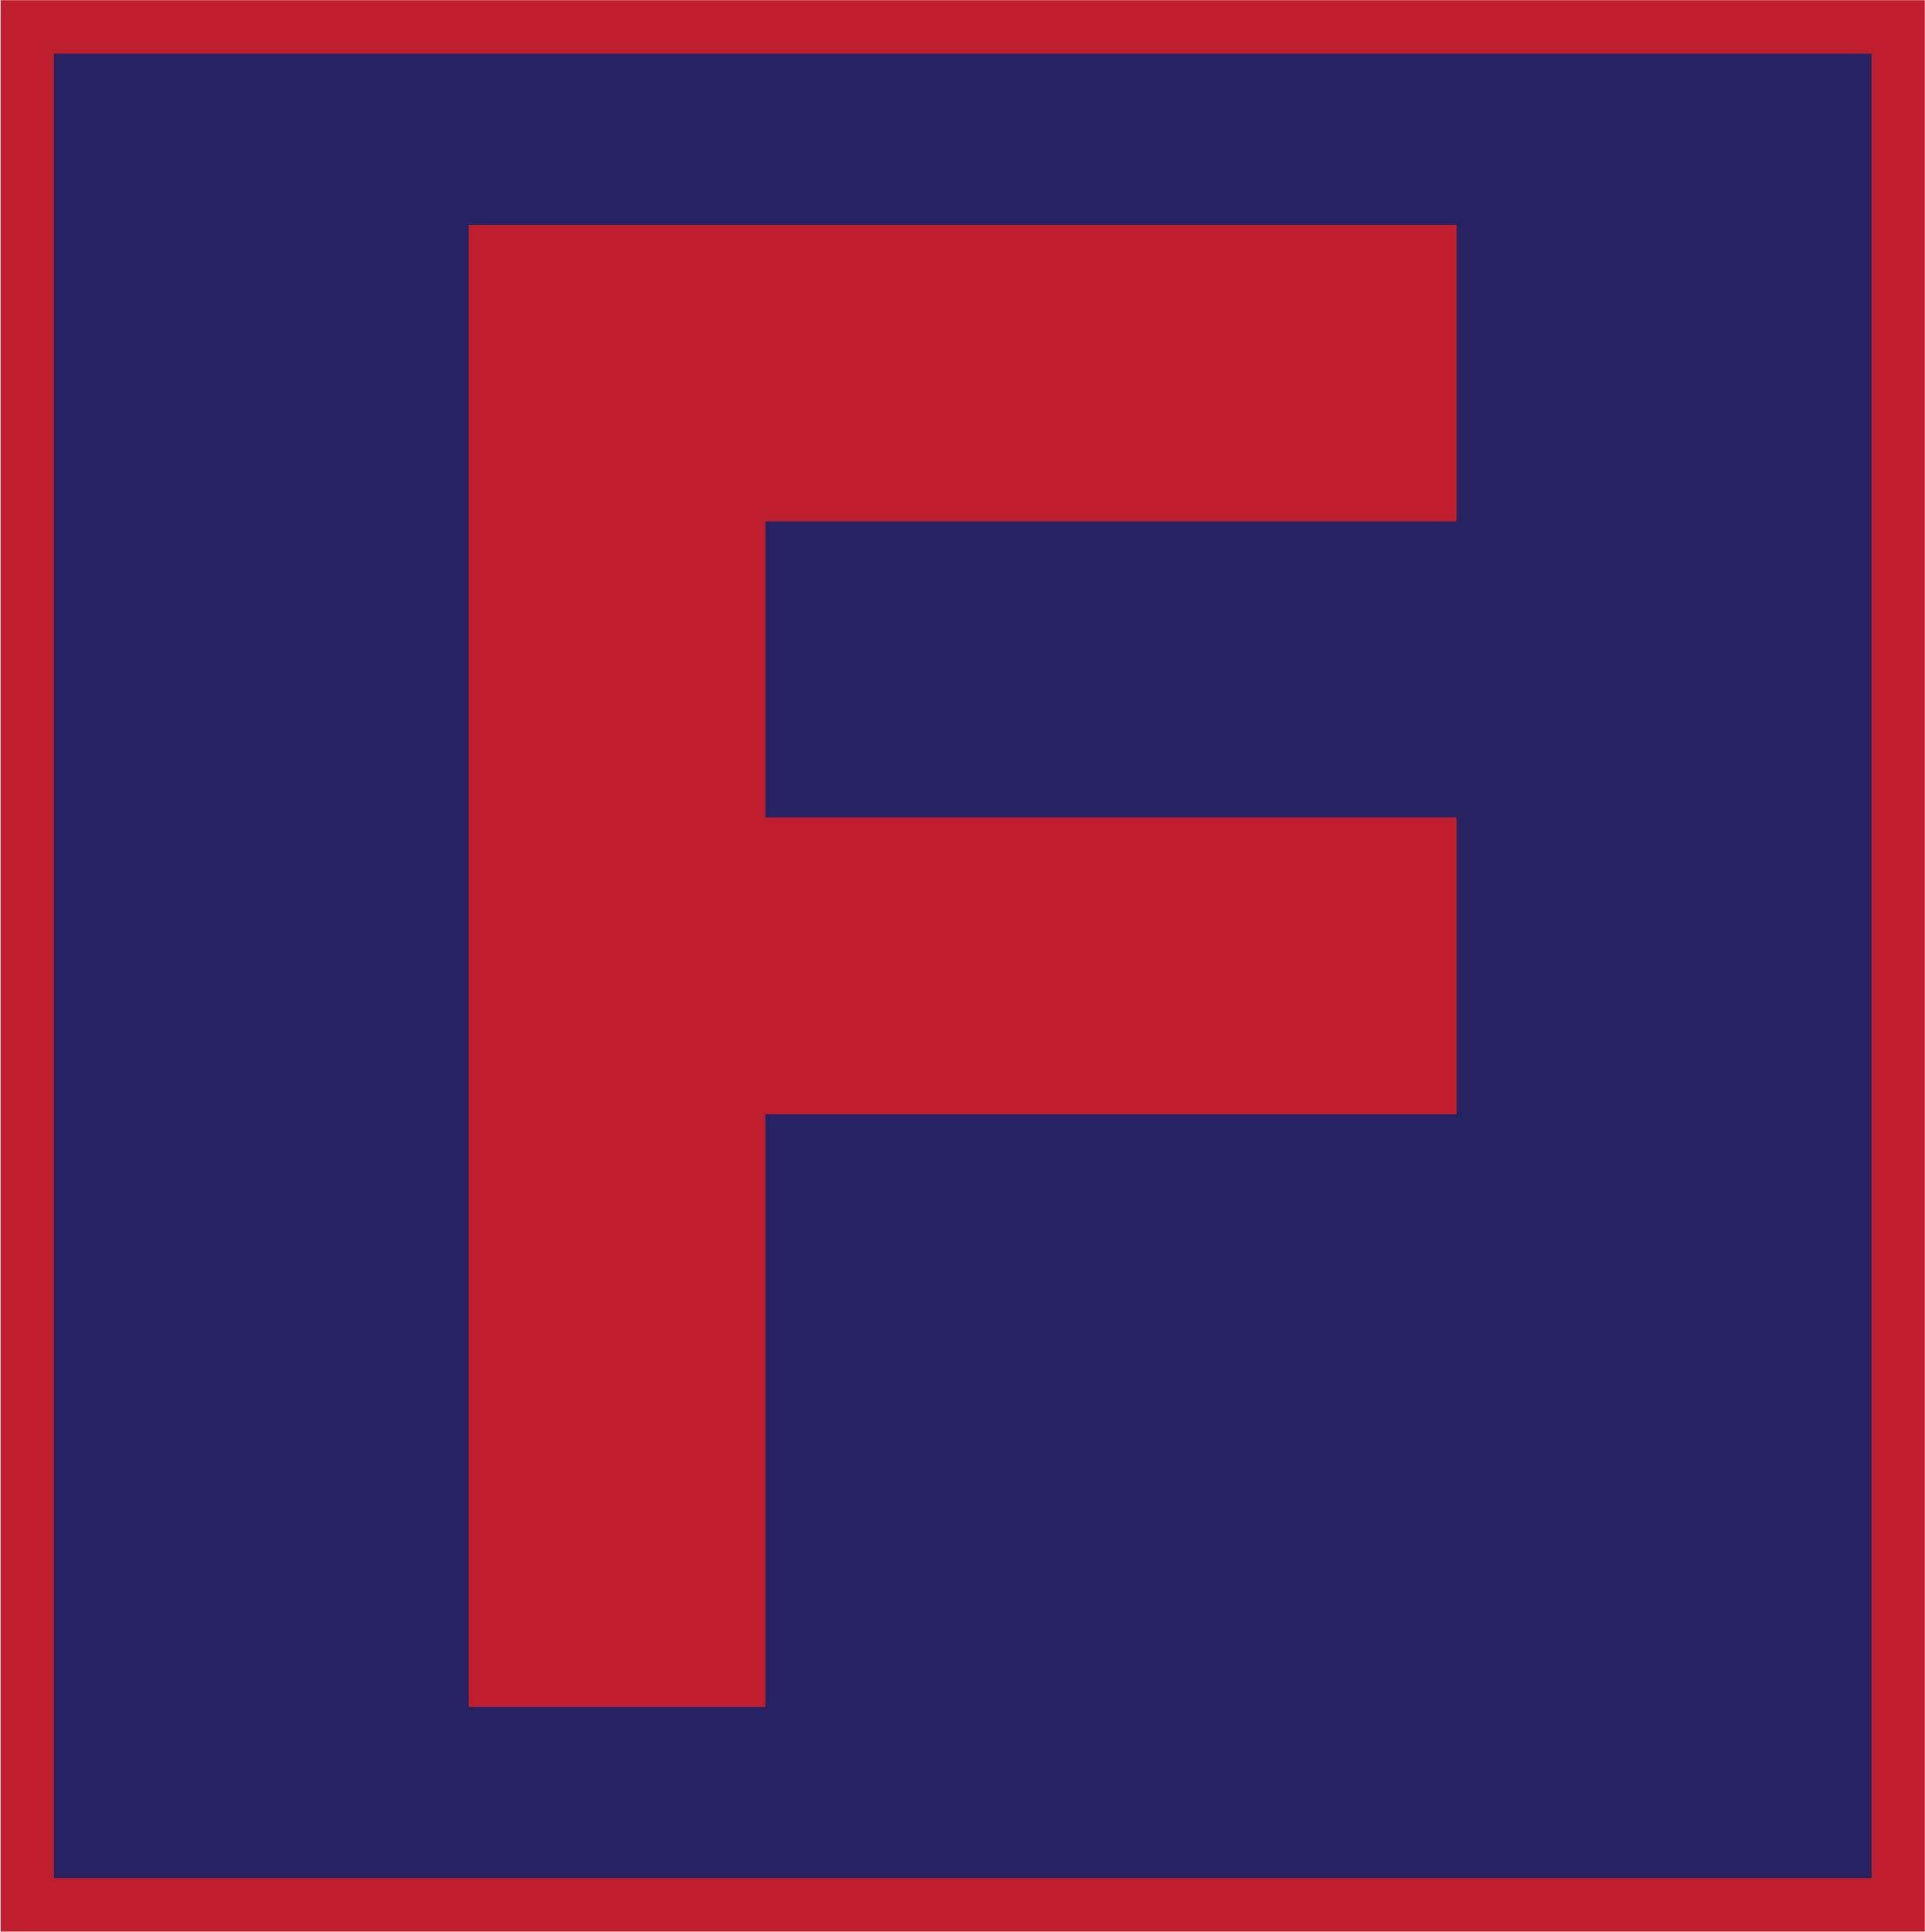 Letter F Printable Template